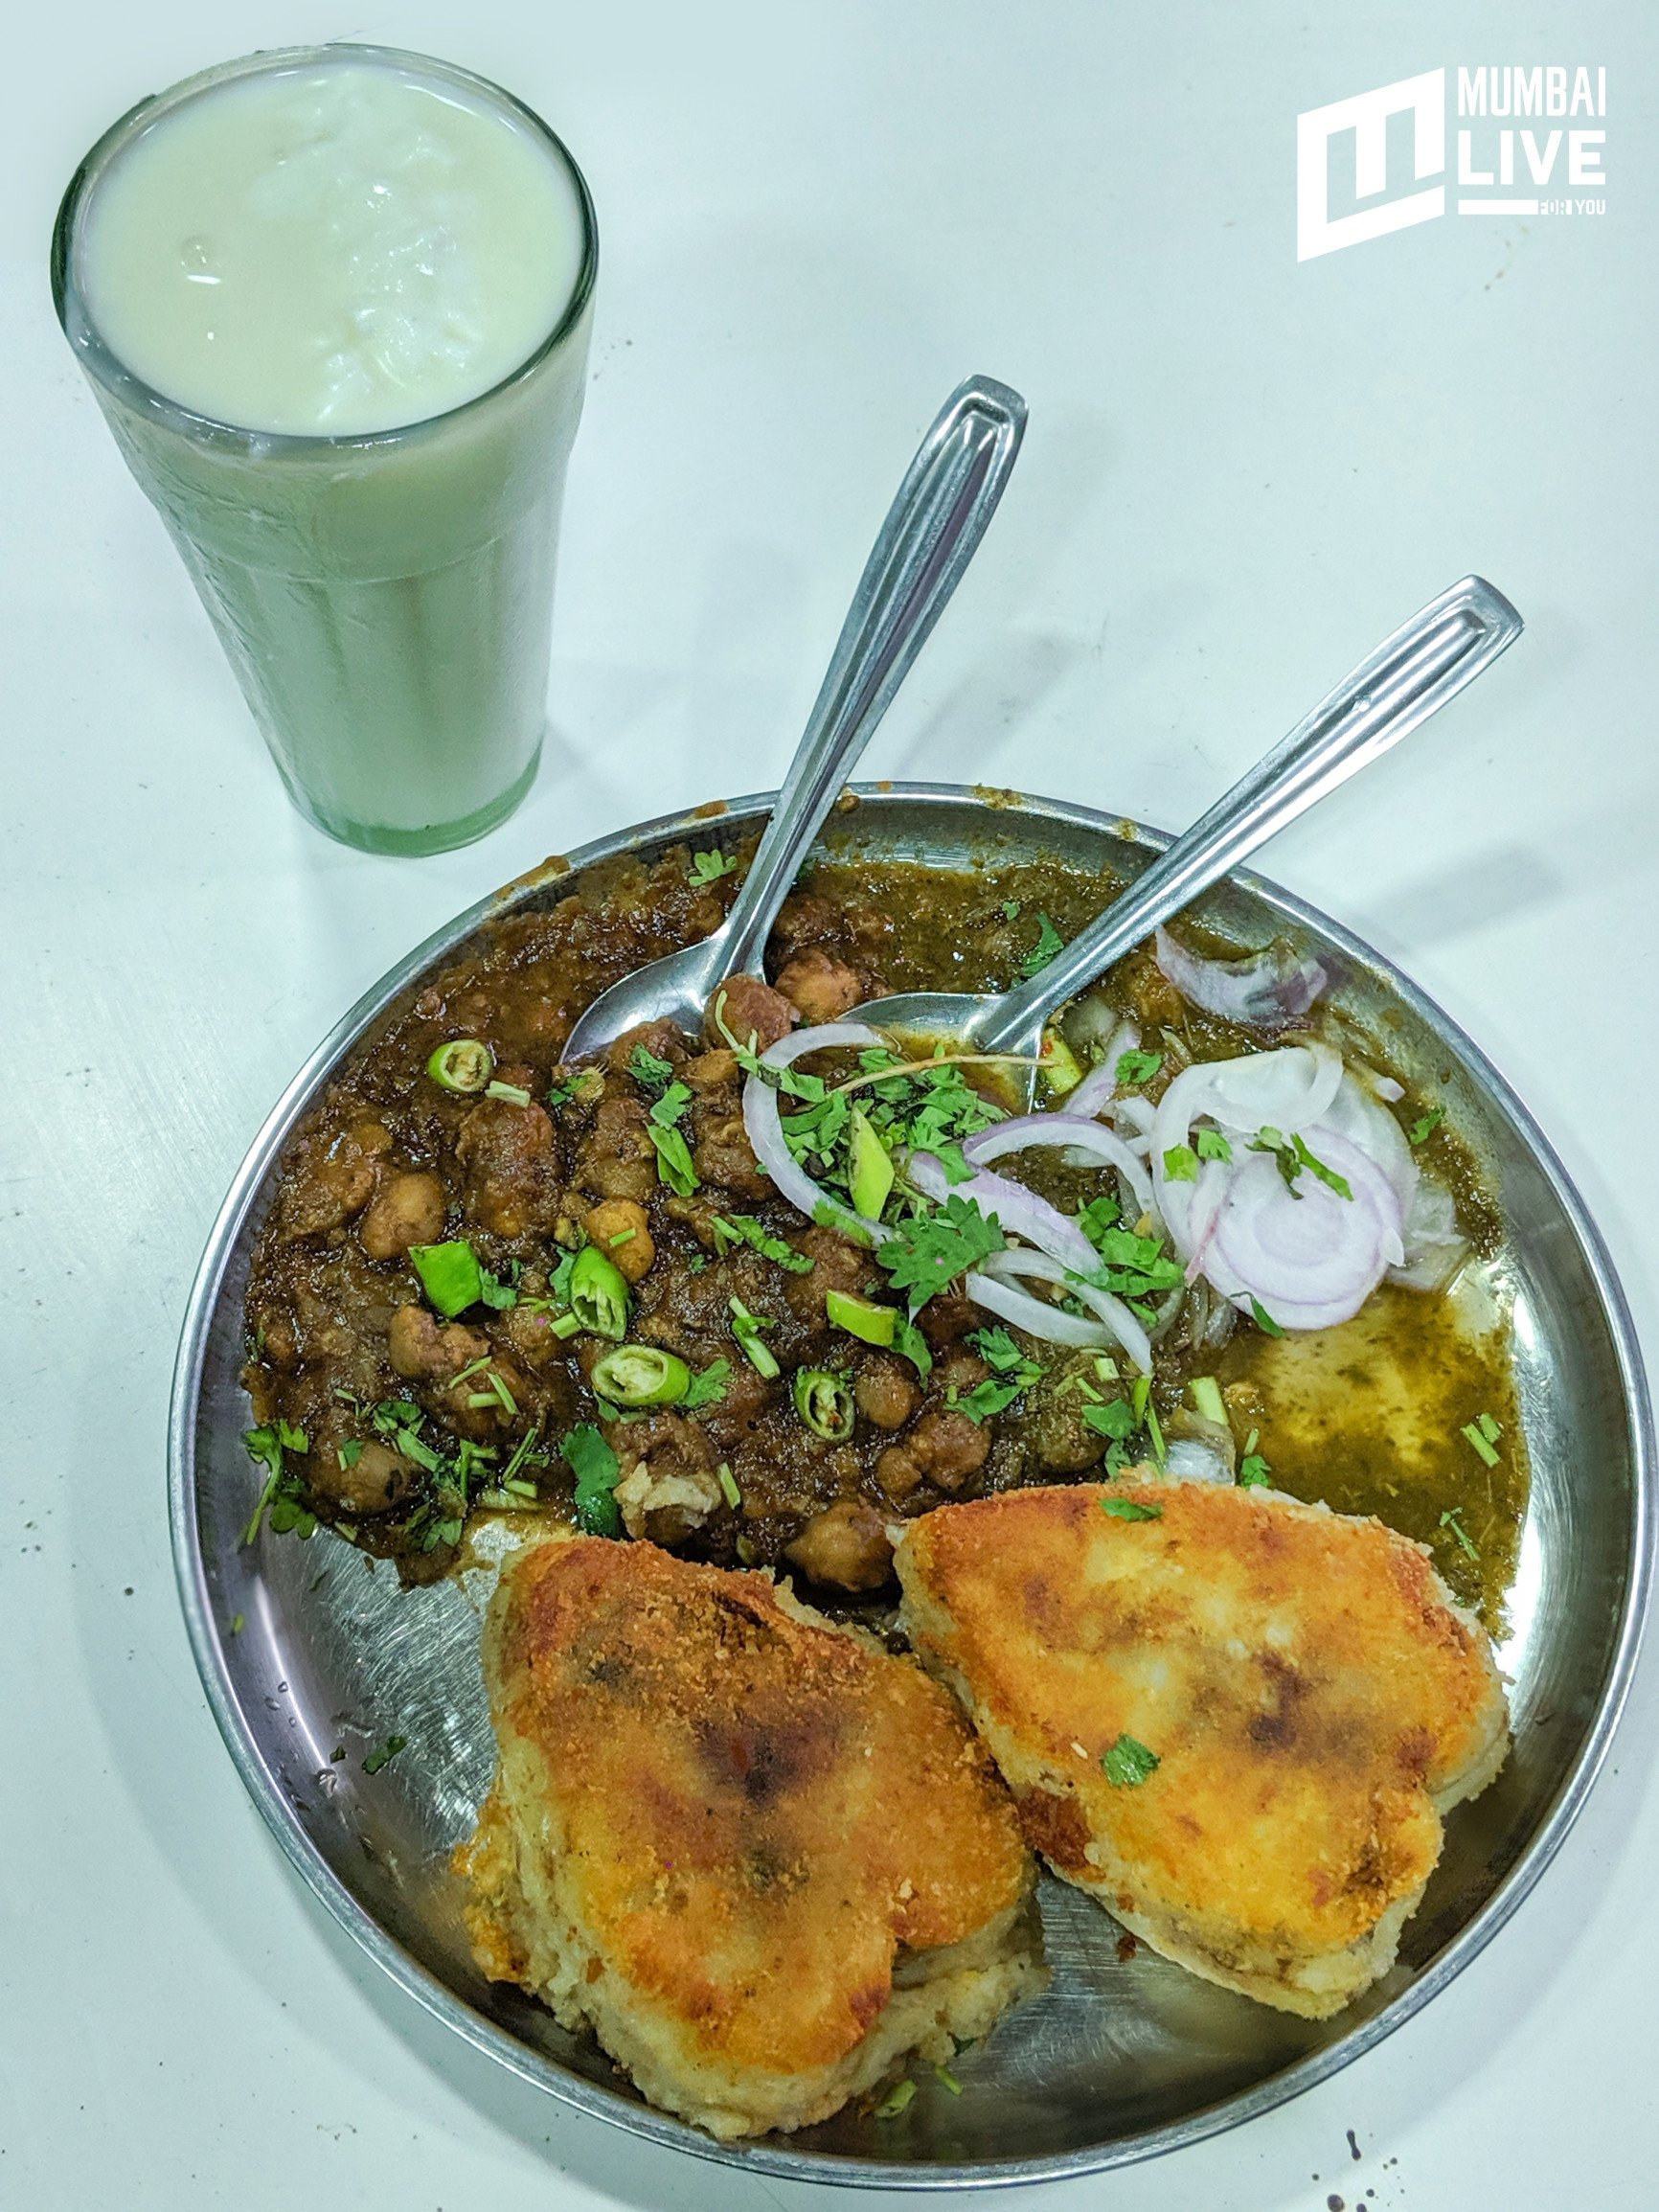 Best of Mumbai Street Food: Chembur's Top 5 'Gully' Bites You Shouldn't Miss Out On